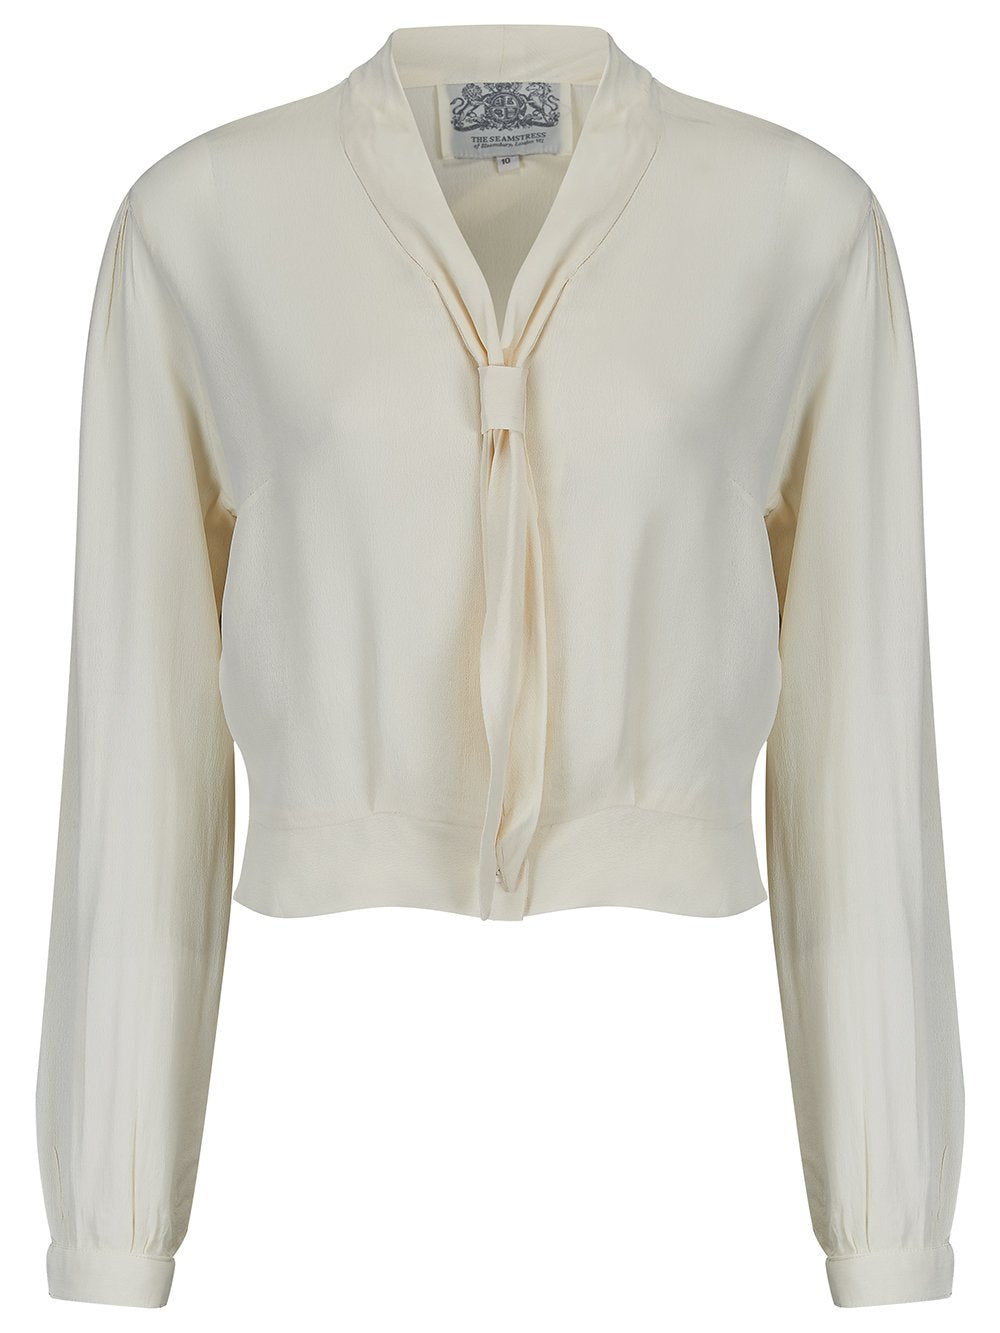 1940s Blouses and Tops Bonnie Long Sleeve Blouse Cream by The Seamstress of Bloomsbury Classic 1940s Vintage Inspired Style £39.00 AT vintagedancer.com